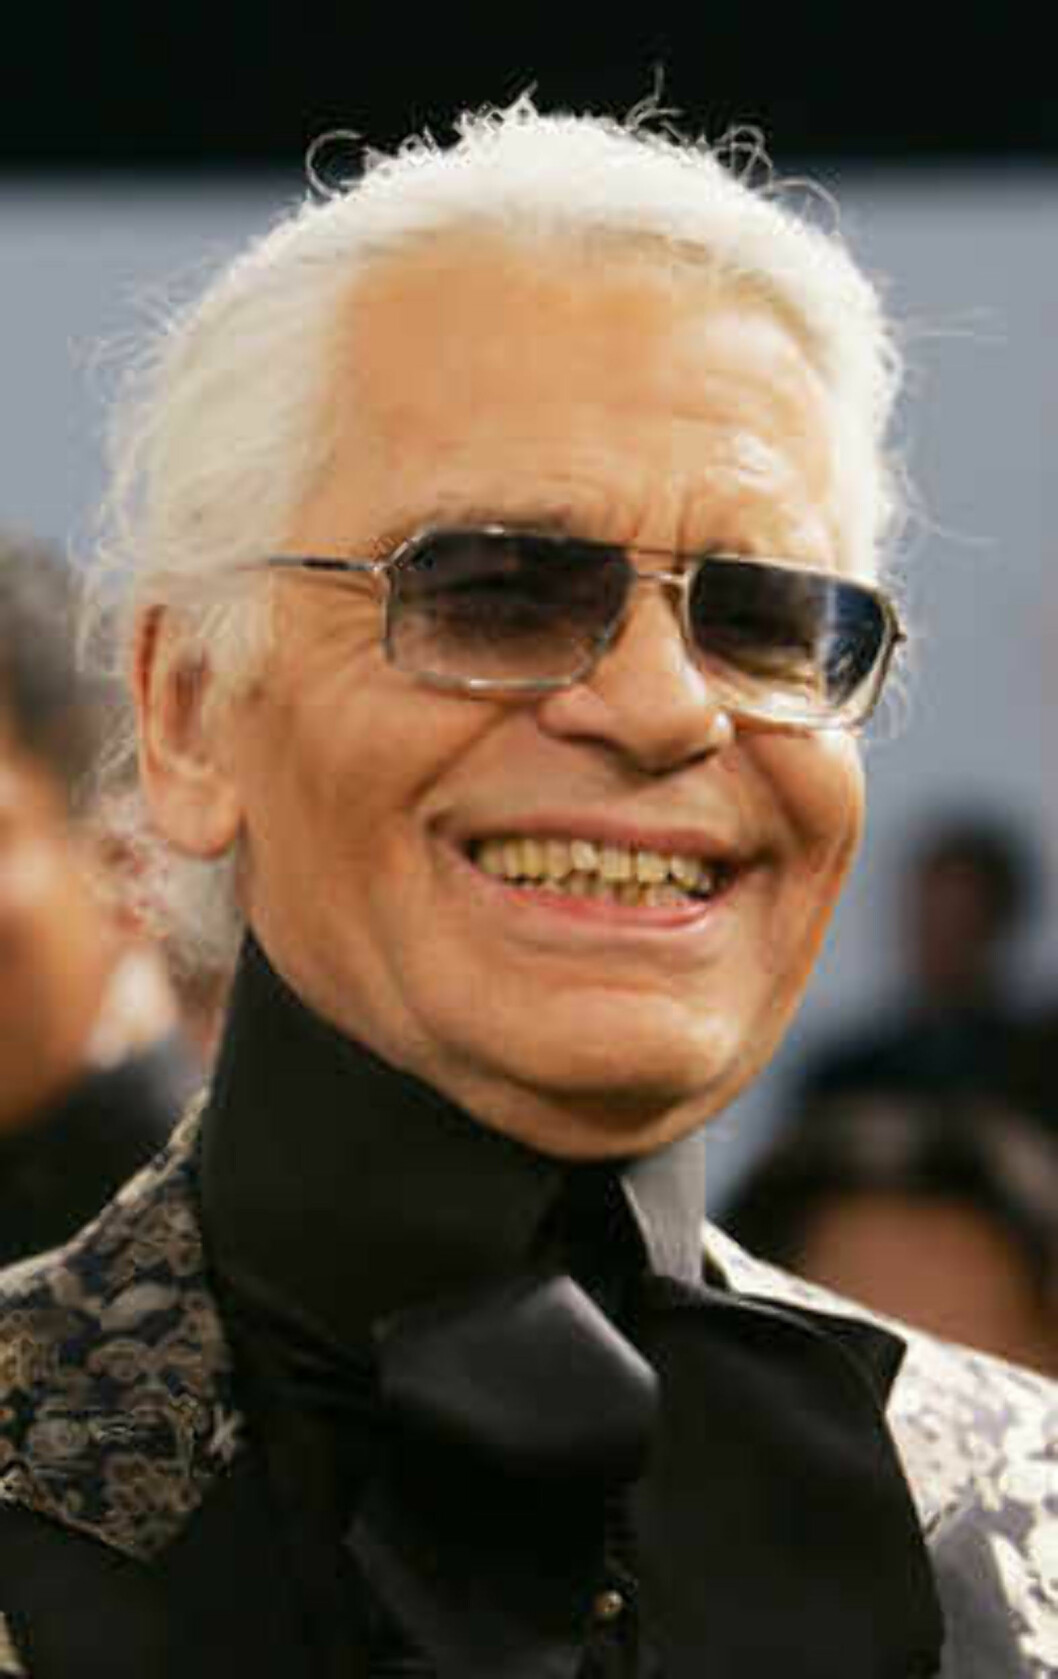 German designer Karl Lagerfeld speaks after the Chanel 2006 Spring-Summer Haute Couture fashion show in Hong Kong Friday, March 24, 2006.  (AP Photo/Kin Cheung) Foto: AP